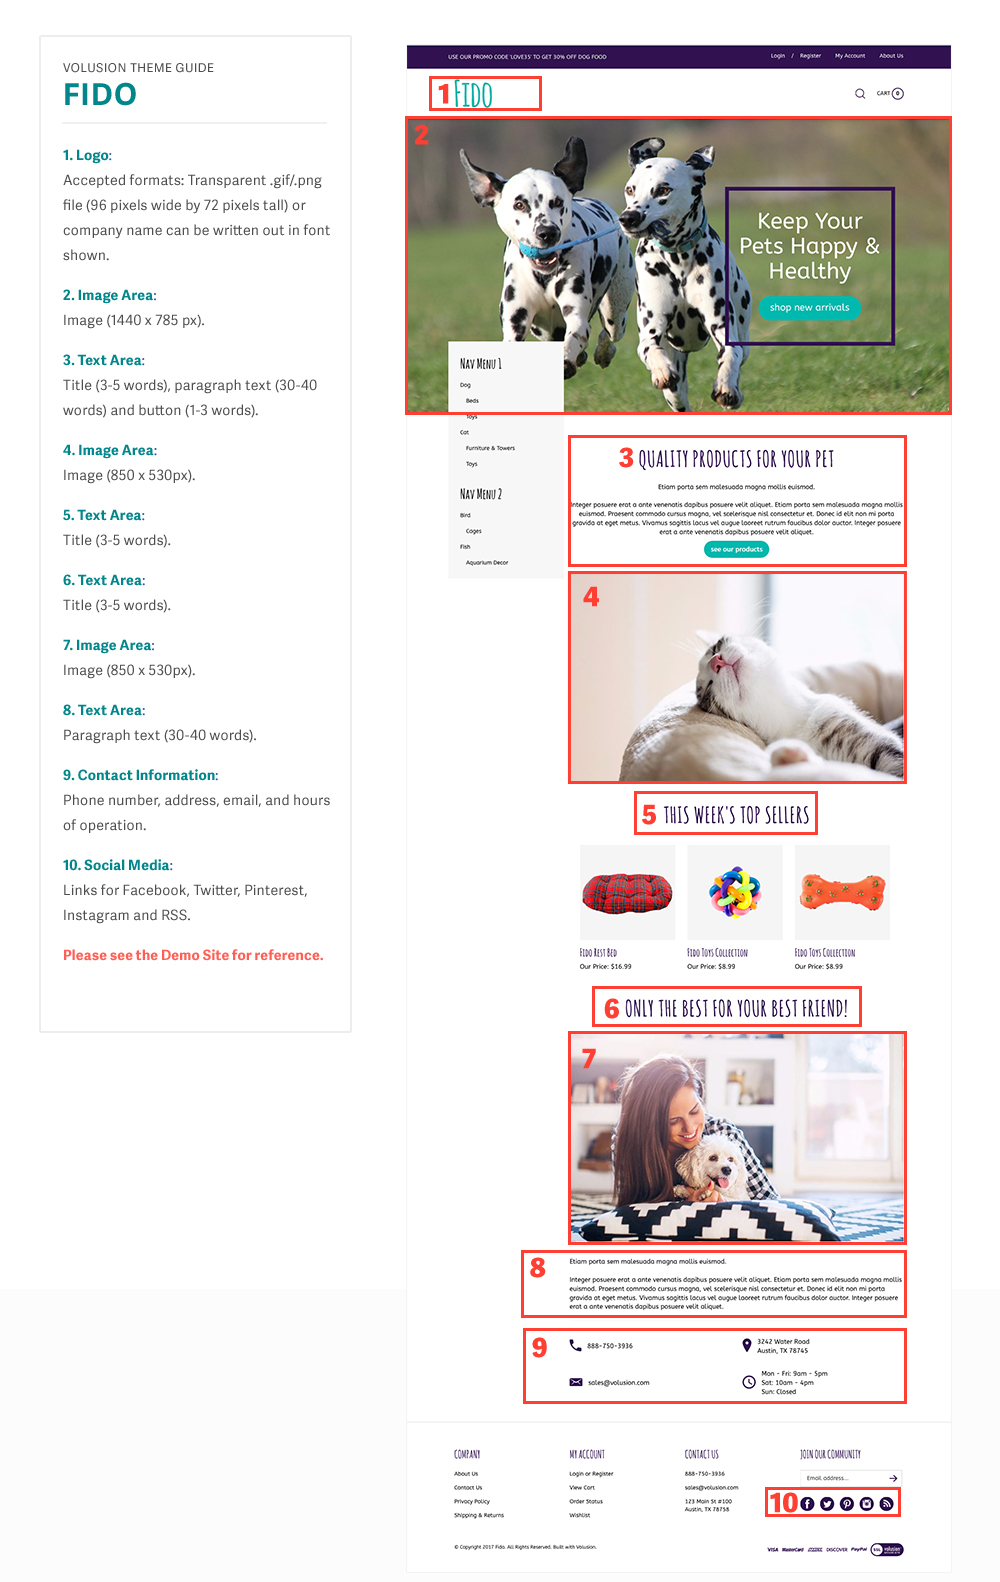 related Fido templated image